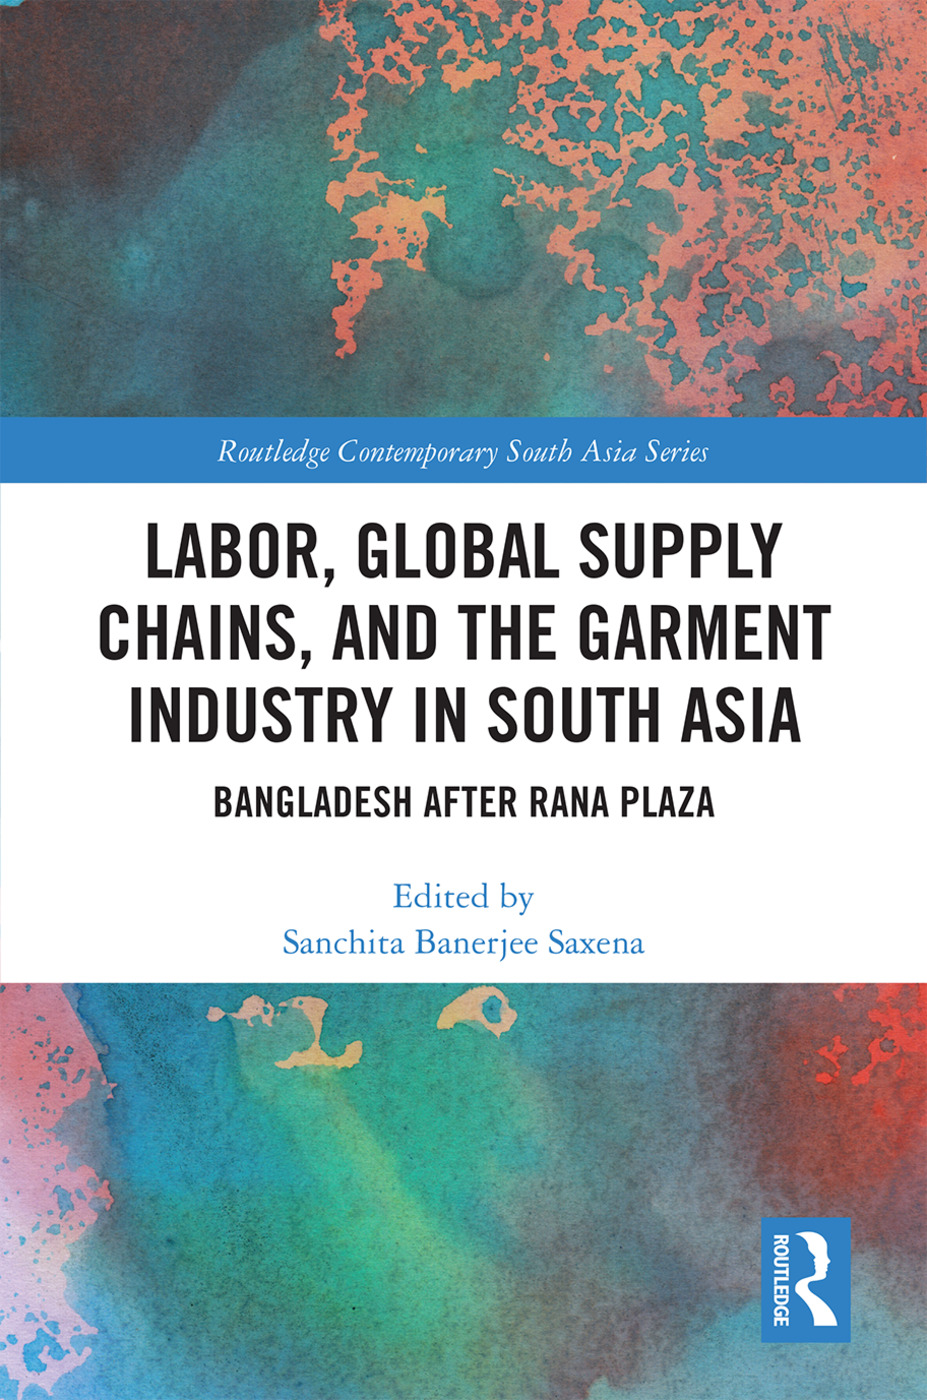 Labor, Global Supply Chains, and the Garment Industry in South Asia: Bangladesh after Rana Plaza book cover